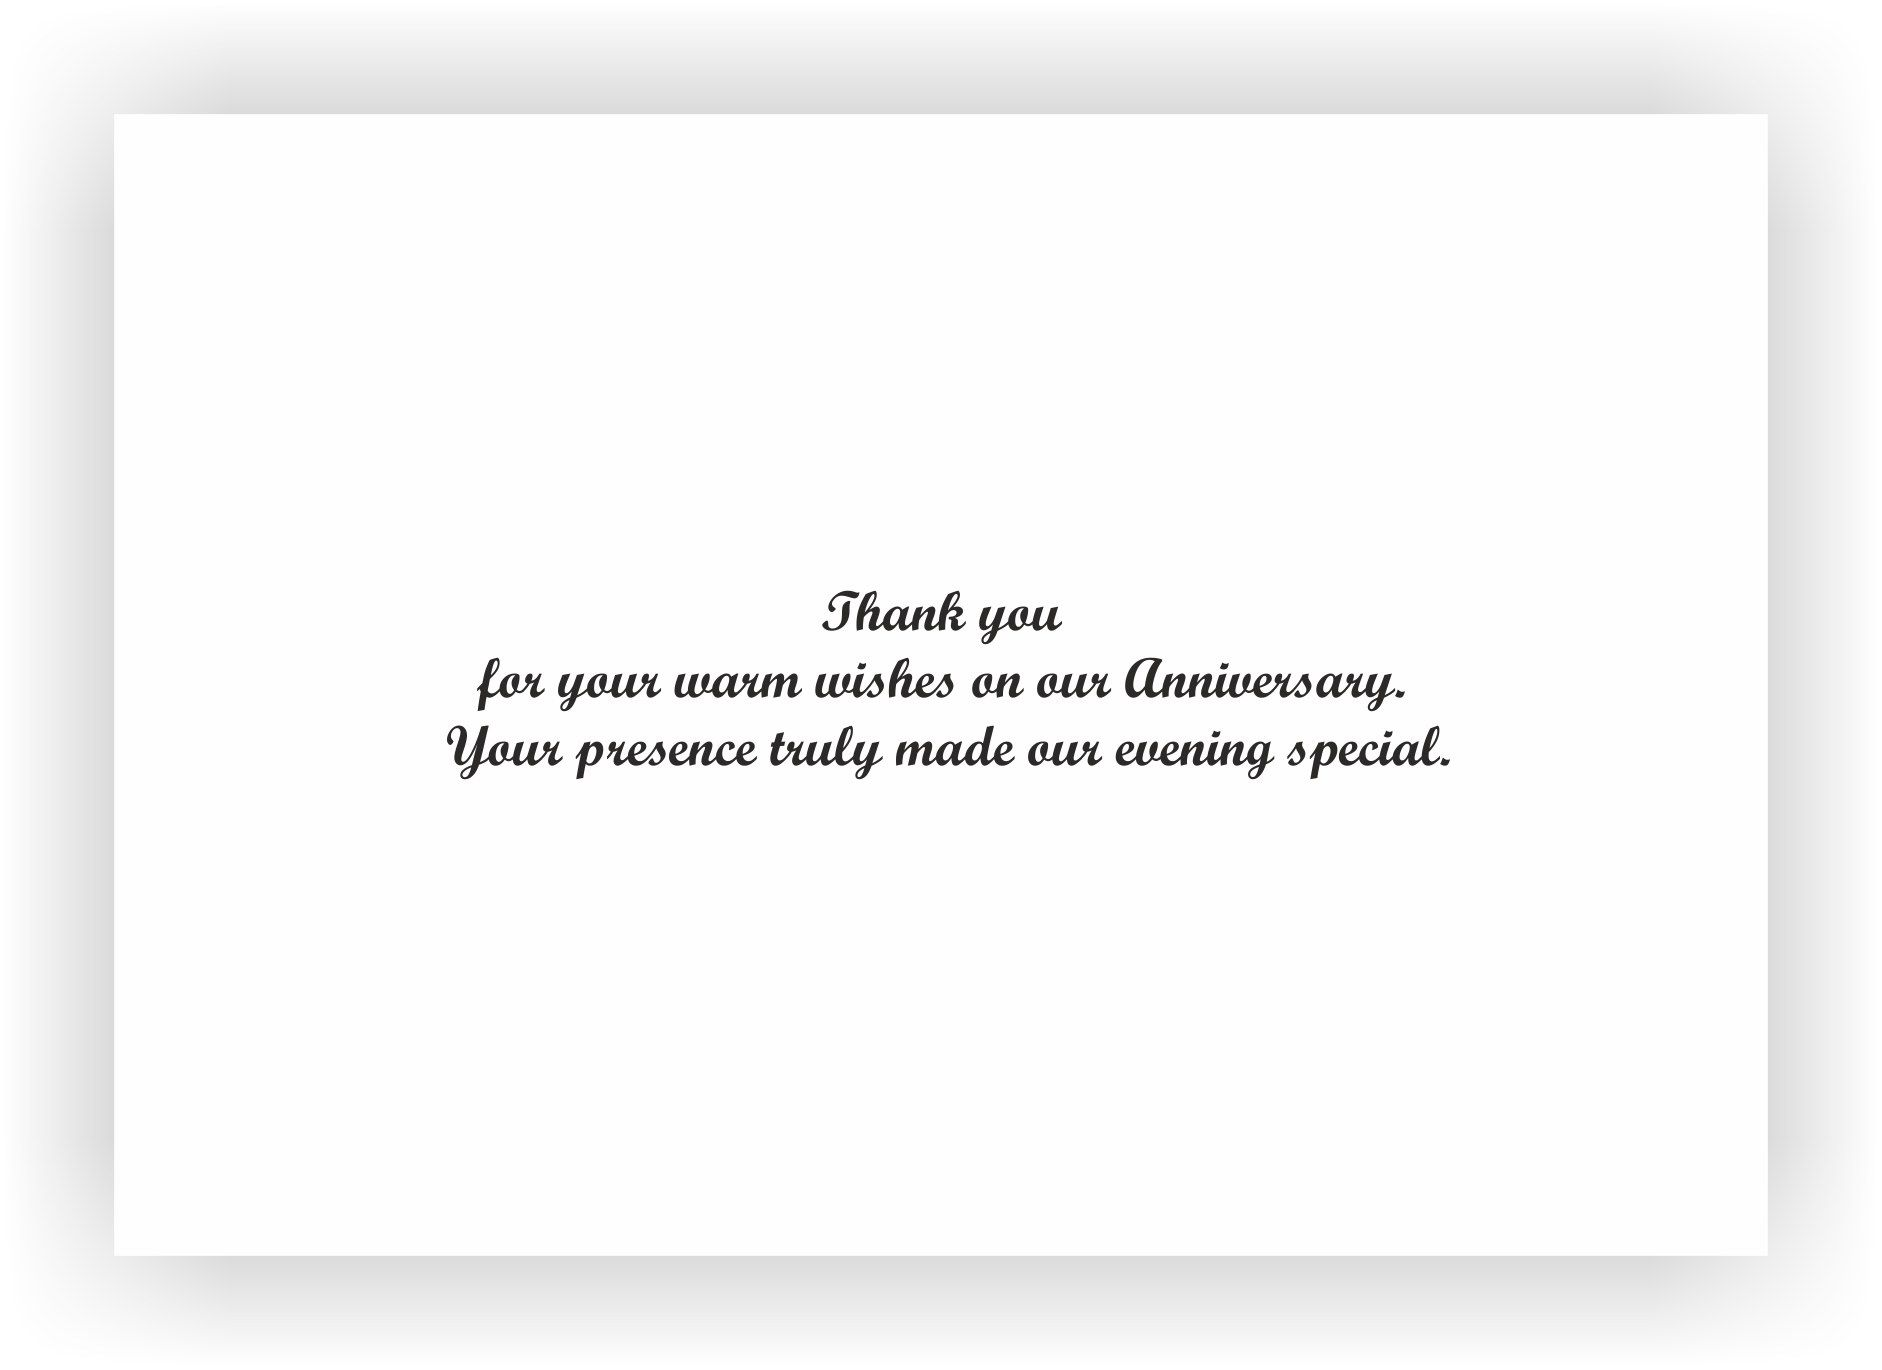 What Gift Do You Give For 25th Wedding Anniversary: Wedding Anniversary Return Gift Wording